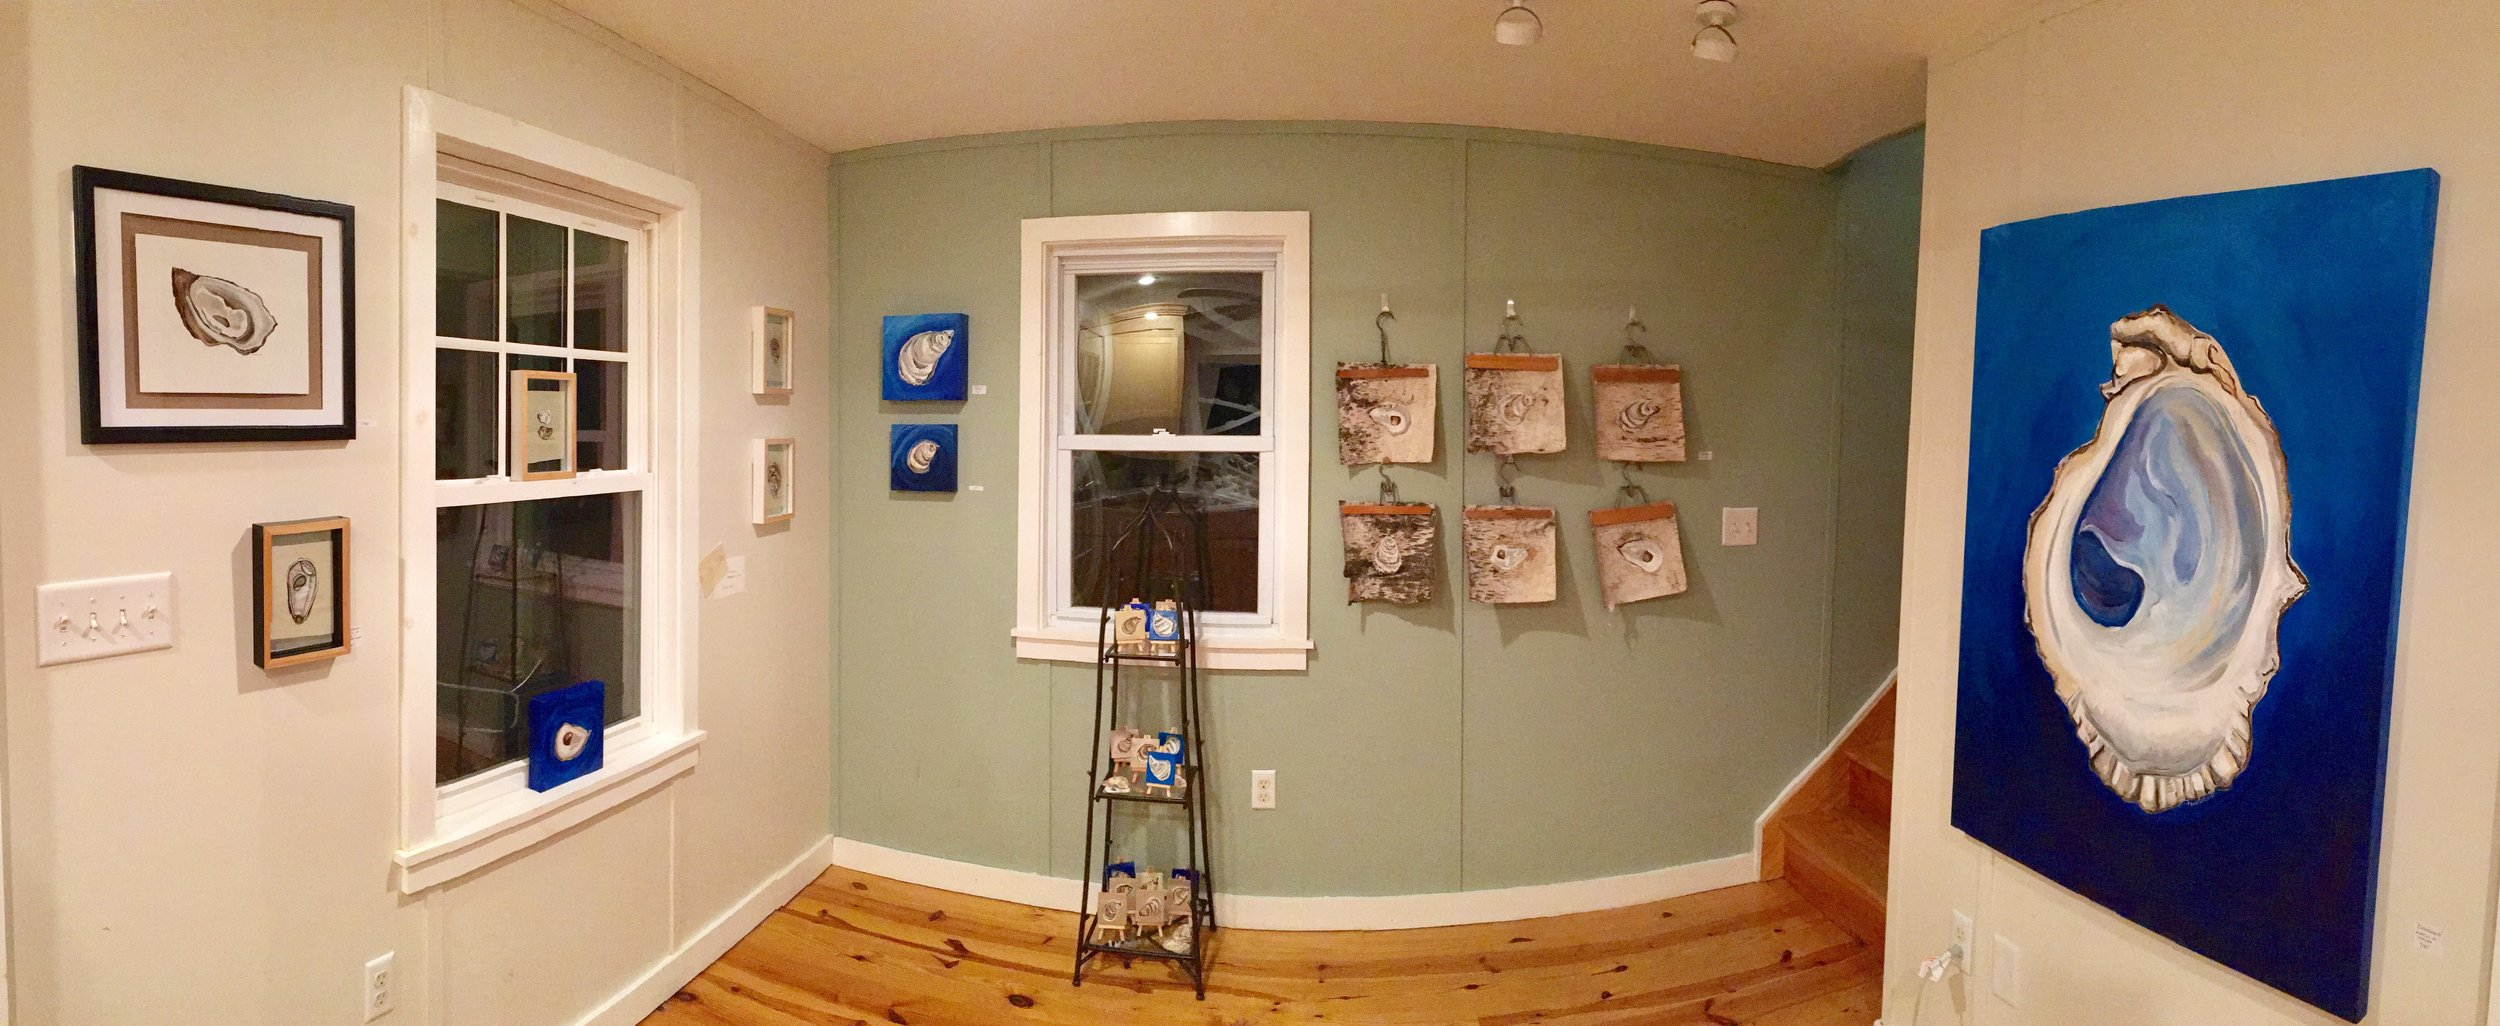 Current collection in my studio's gallery space.